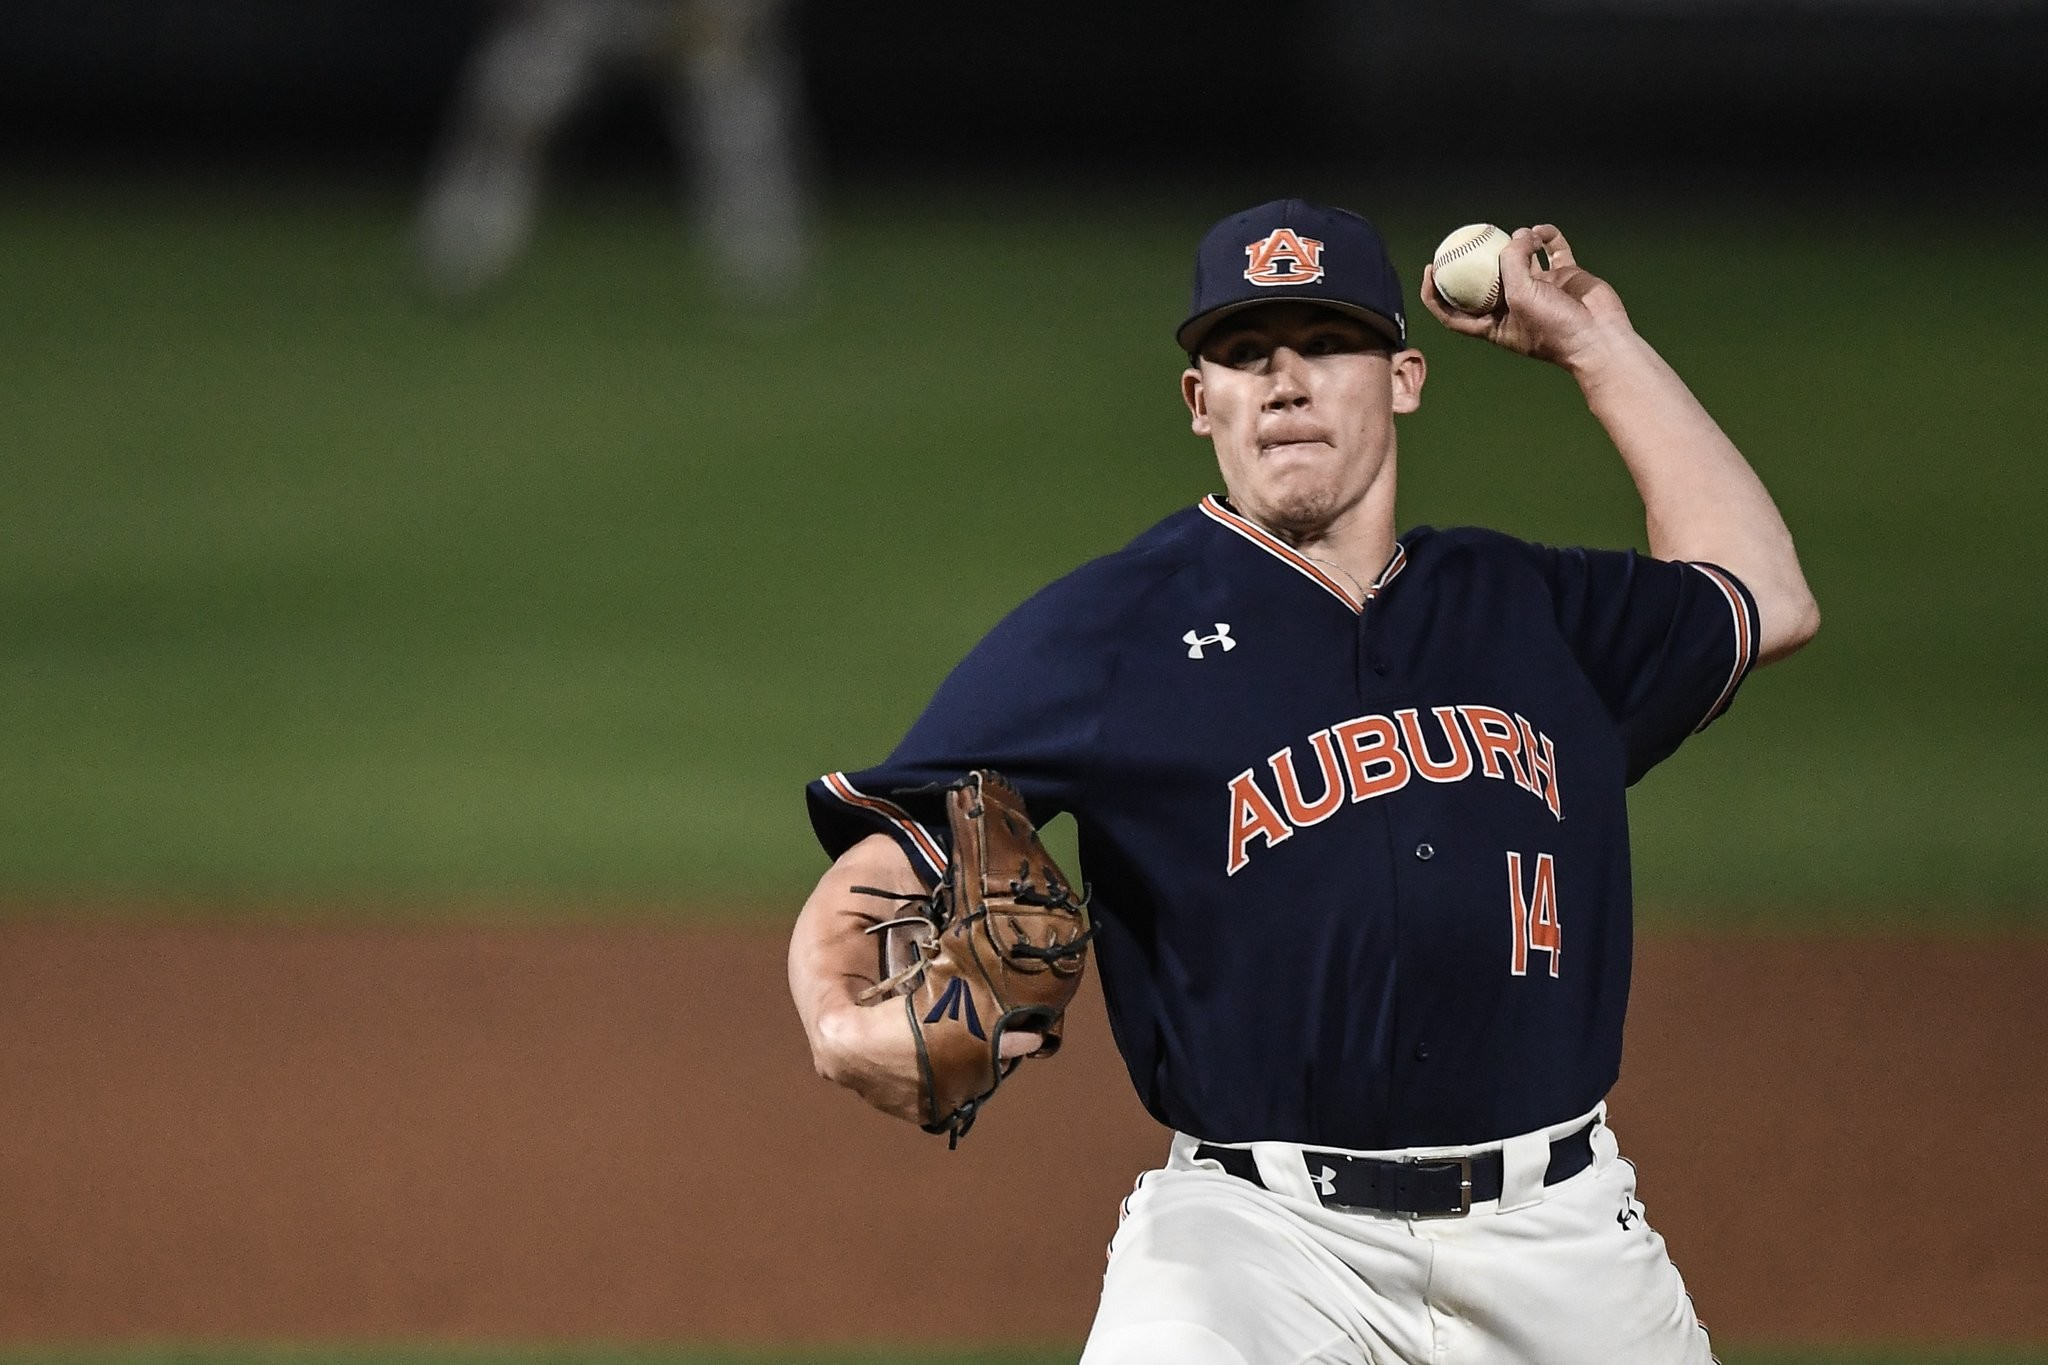 Auburn sophomore Elliott Anderson pitches during a game earlier this season. The former Cartersville hurler is 5-0 in 18 appearances this season for the Tigers with a 2.81 ERA and 28 strikeouts in 25 2/3 innings.